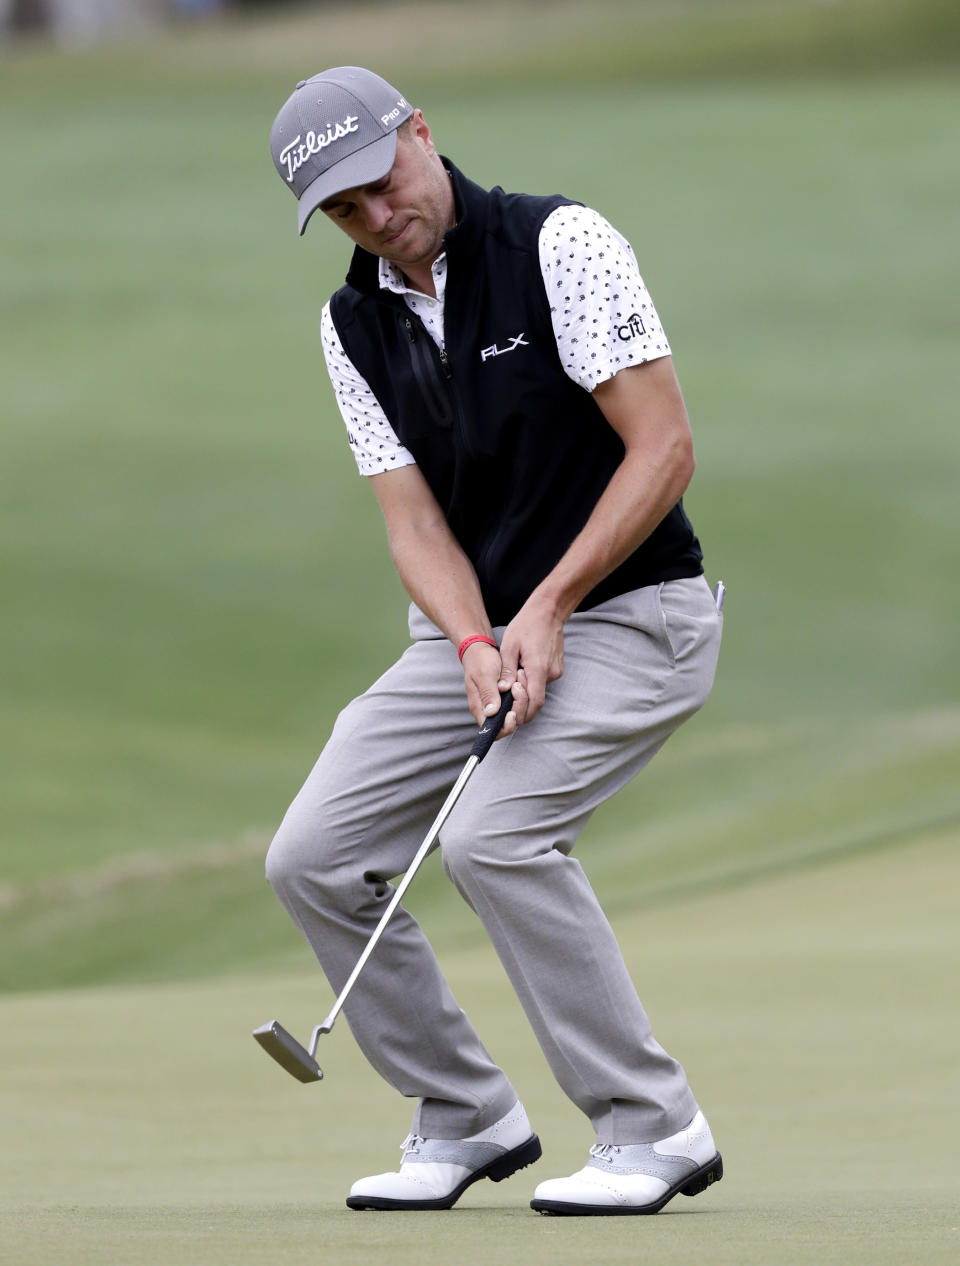 Justin Thomas reacts as he misses a putt on the fifth hole during round-robin play at the Dell Technologies Match Play Championship golf tournament, Friday, March 29, 2019, in Austin, Texas. (AP Photo/Eric Gay)